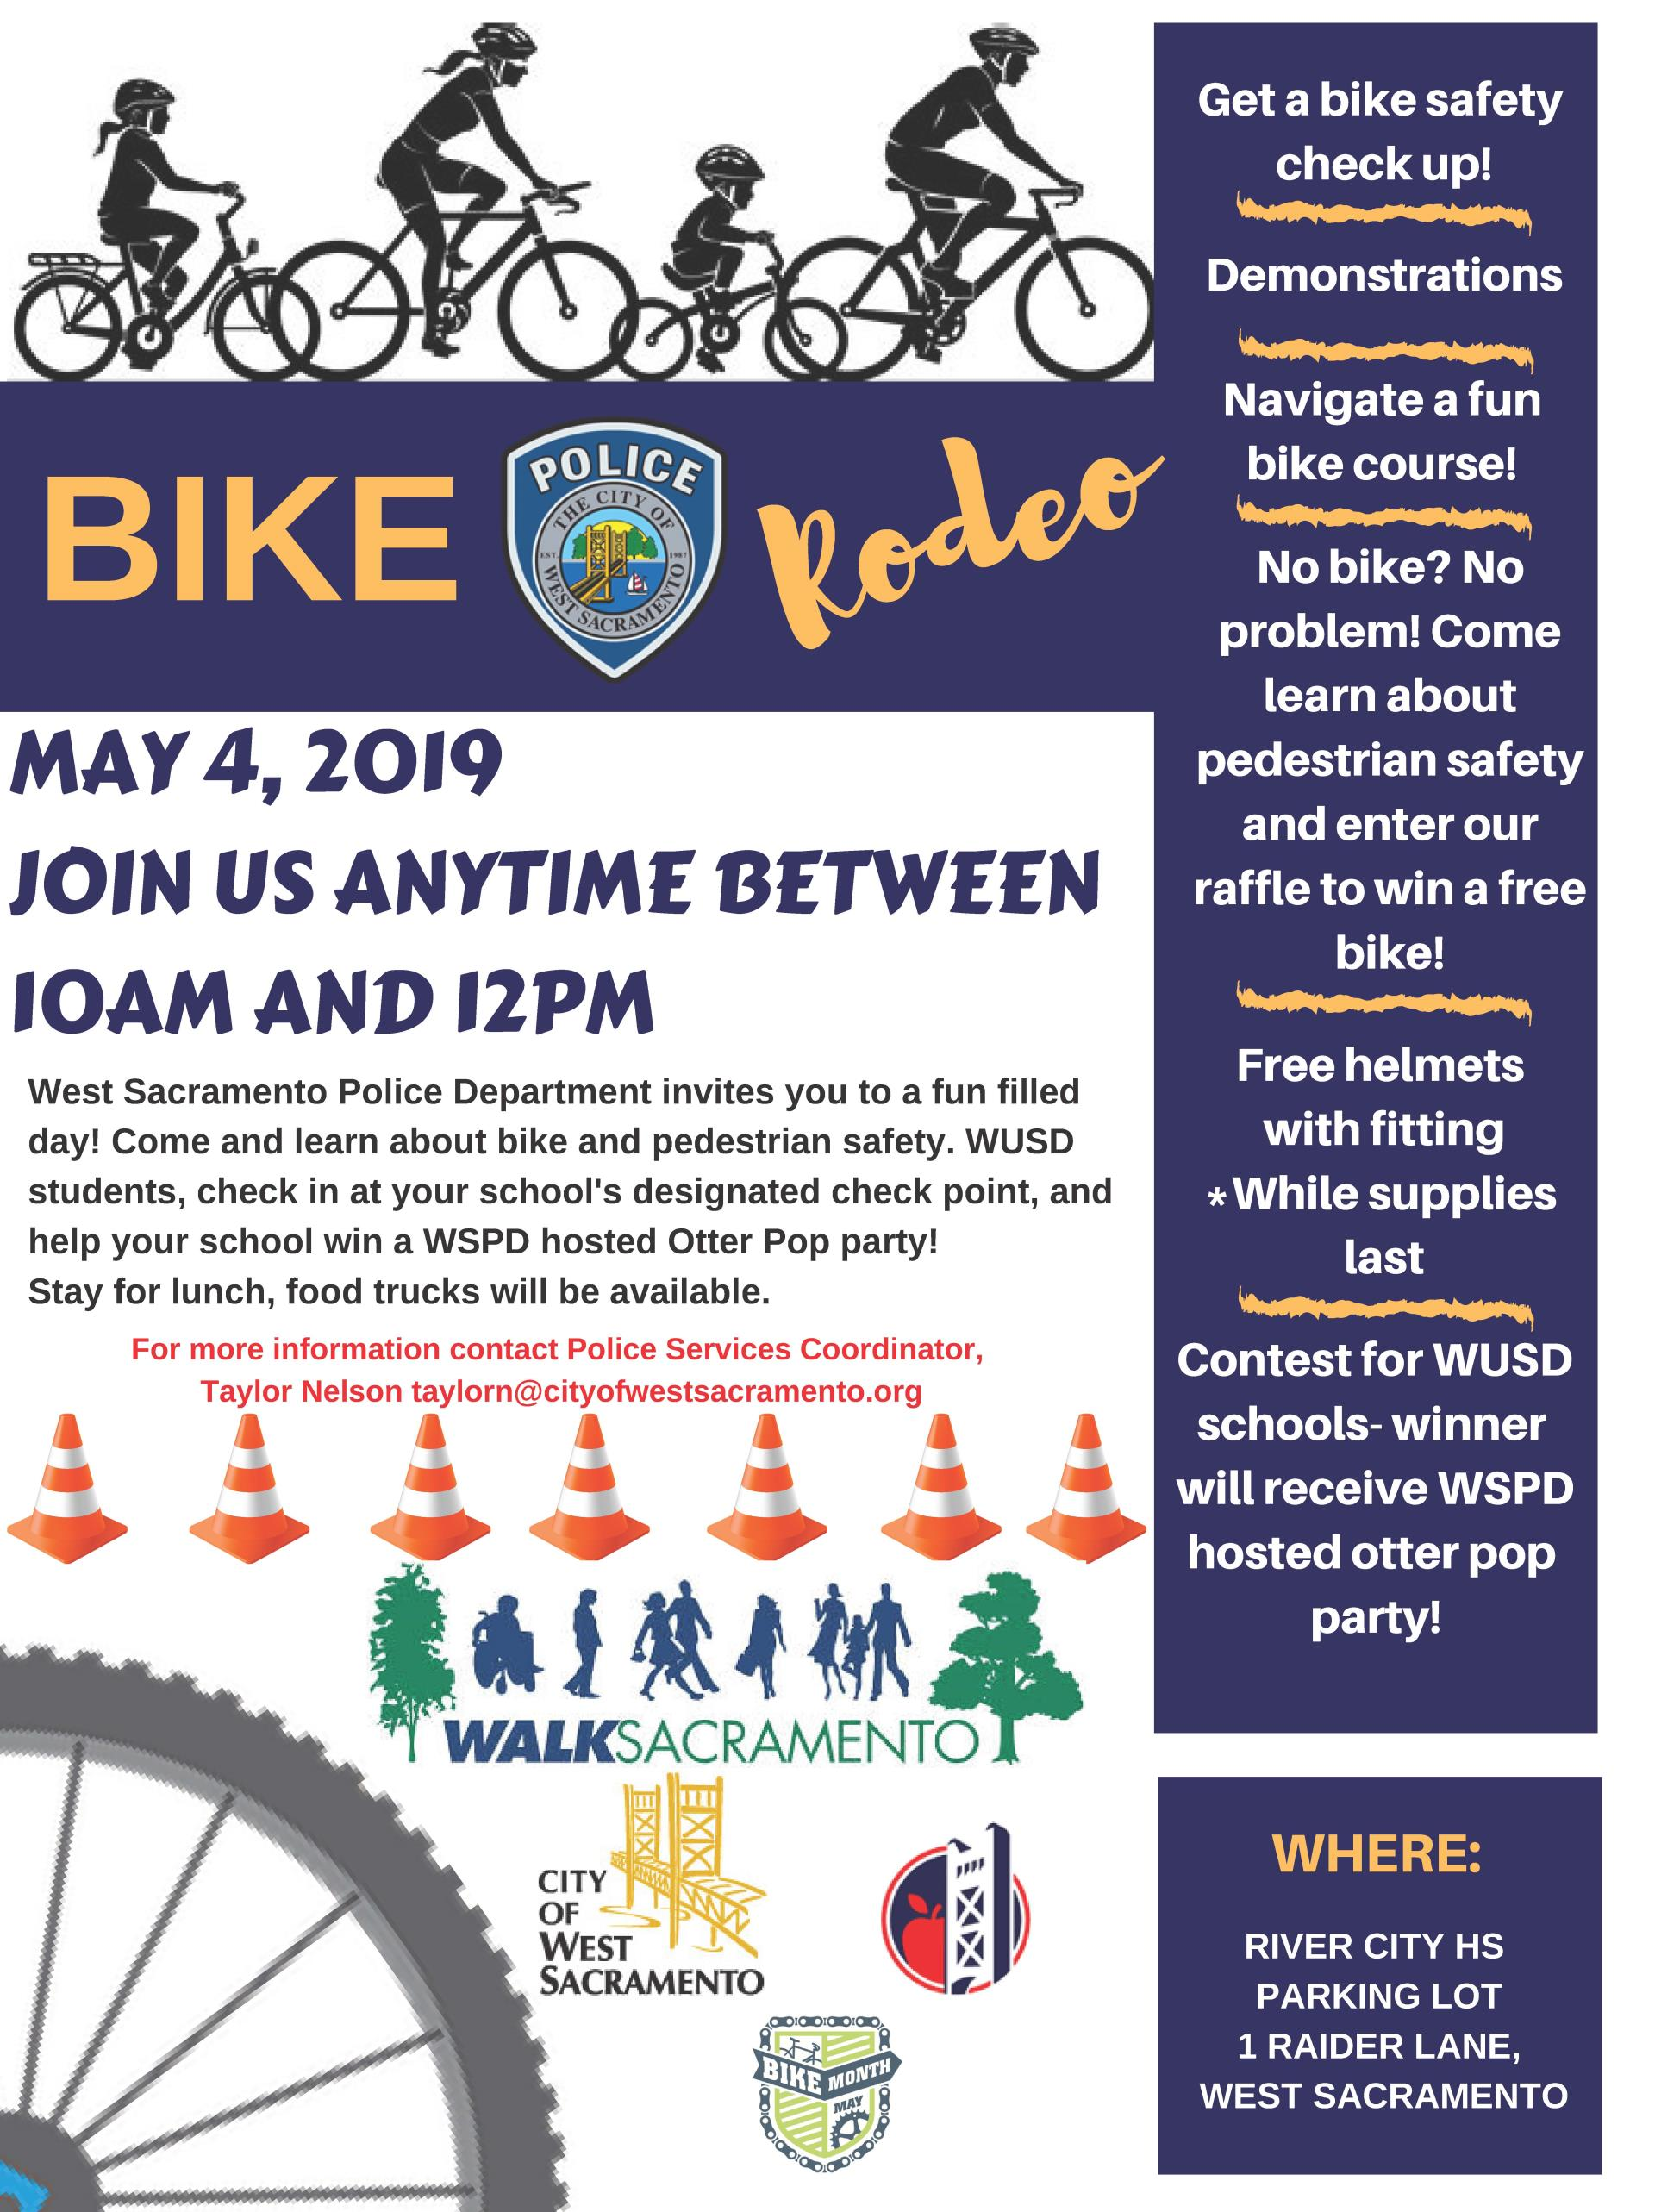 Bike Rodeo Flyer for may 4th event at river city high school